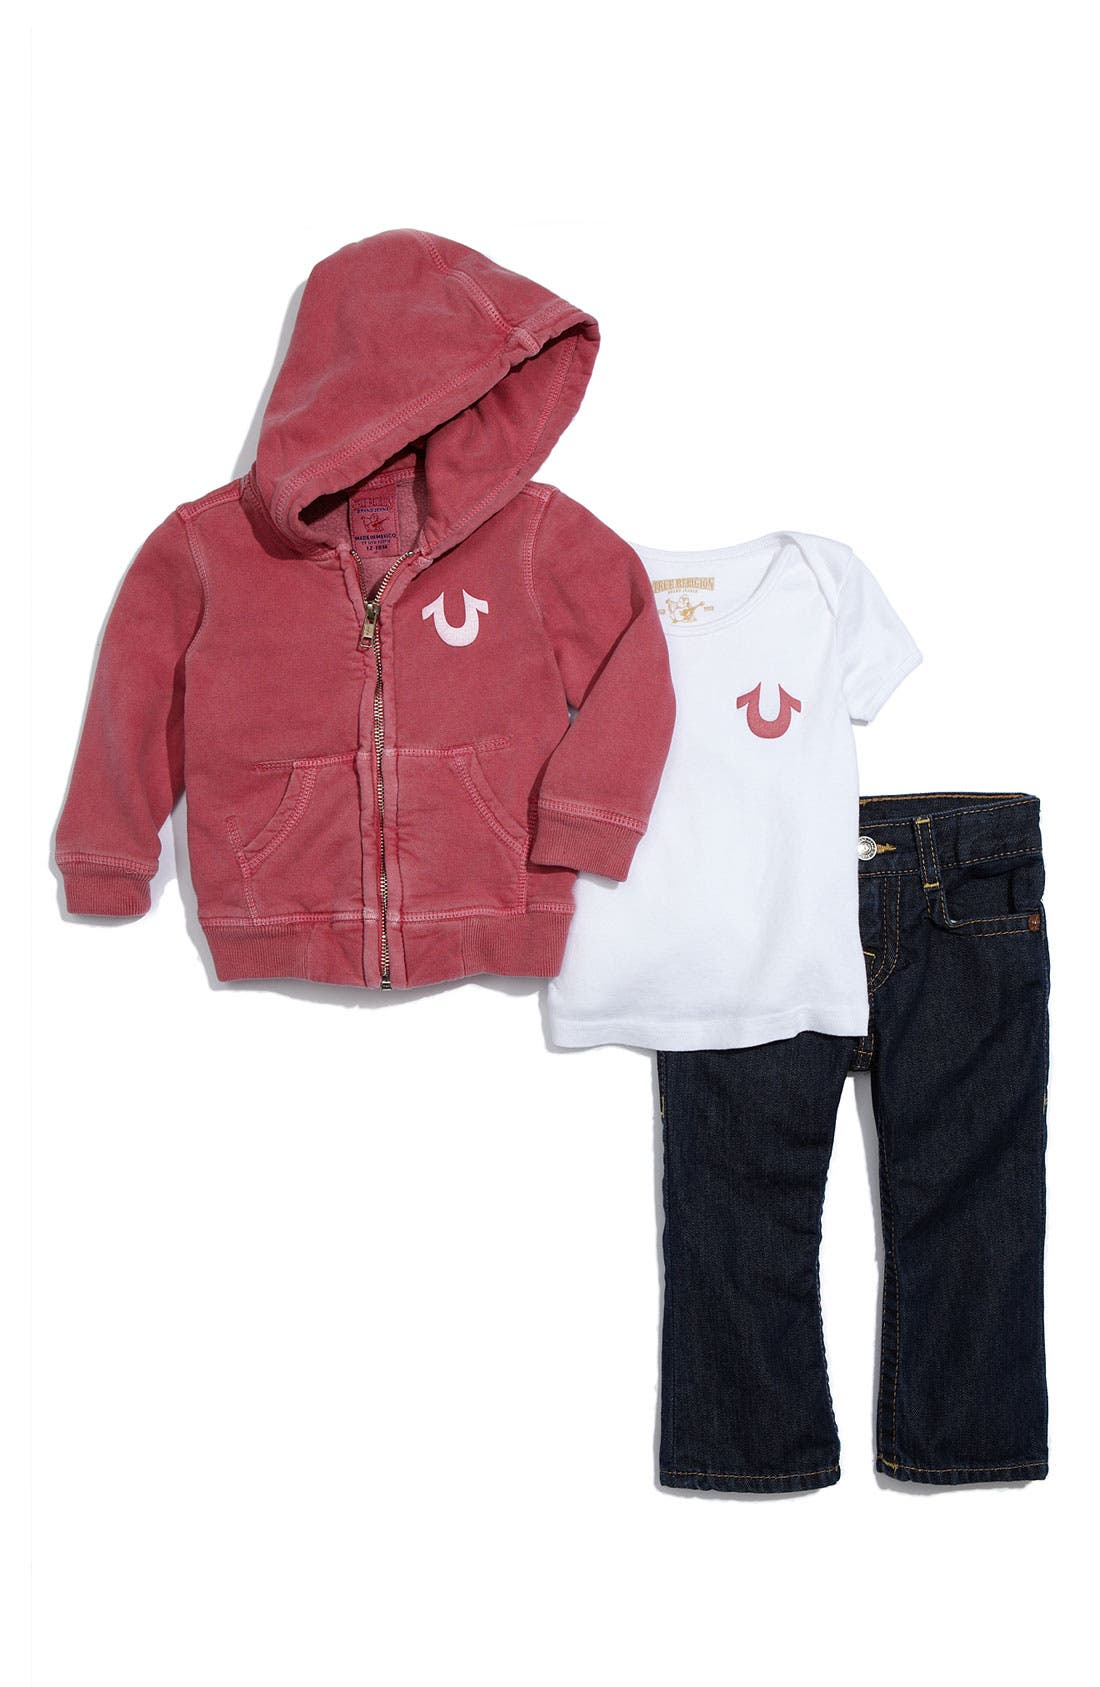 Alternate Image 1 Selected - True Religion Brand Jeans 3-Piece Gift Set (Infant)